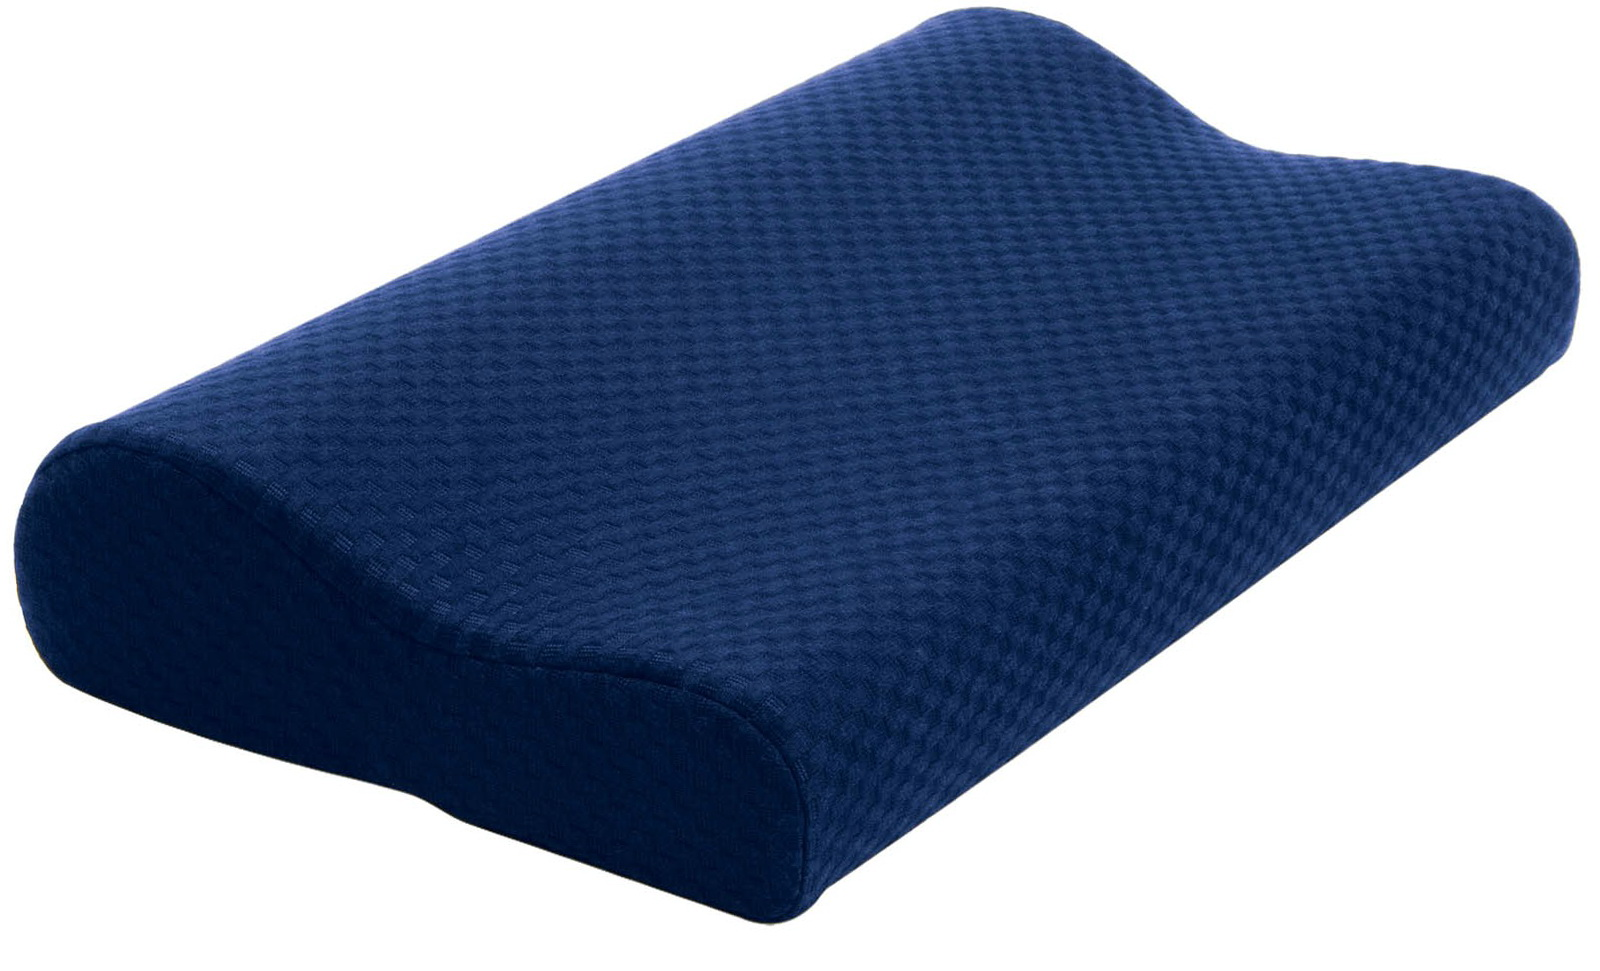 Carex Lumbar Support Cushion